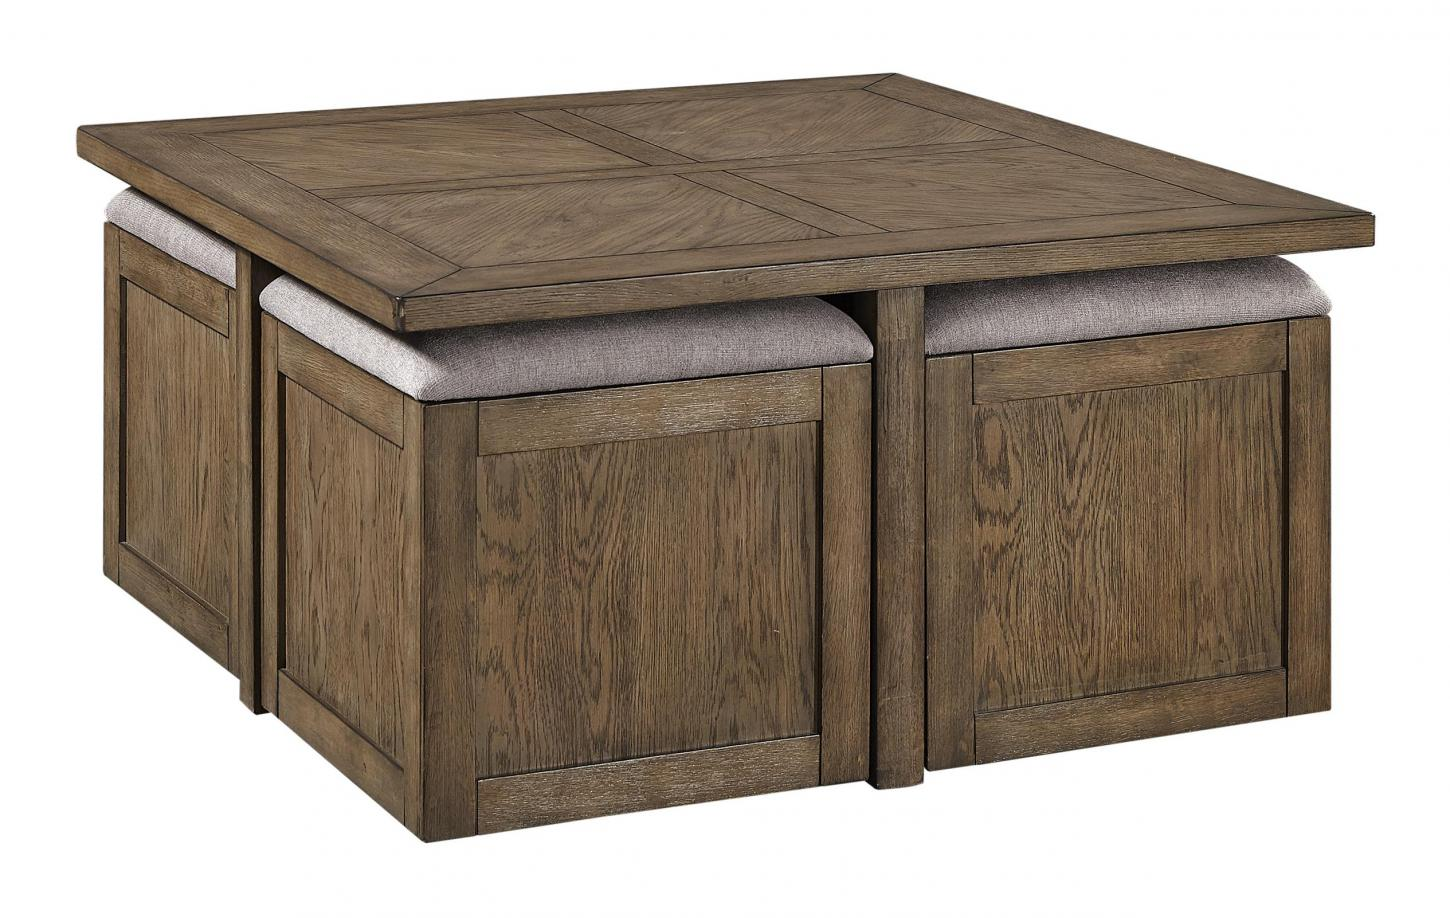 Terrace Point Cocktail Nesting Table / With Stools I221